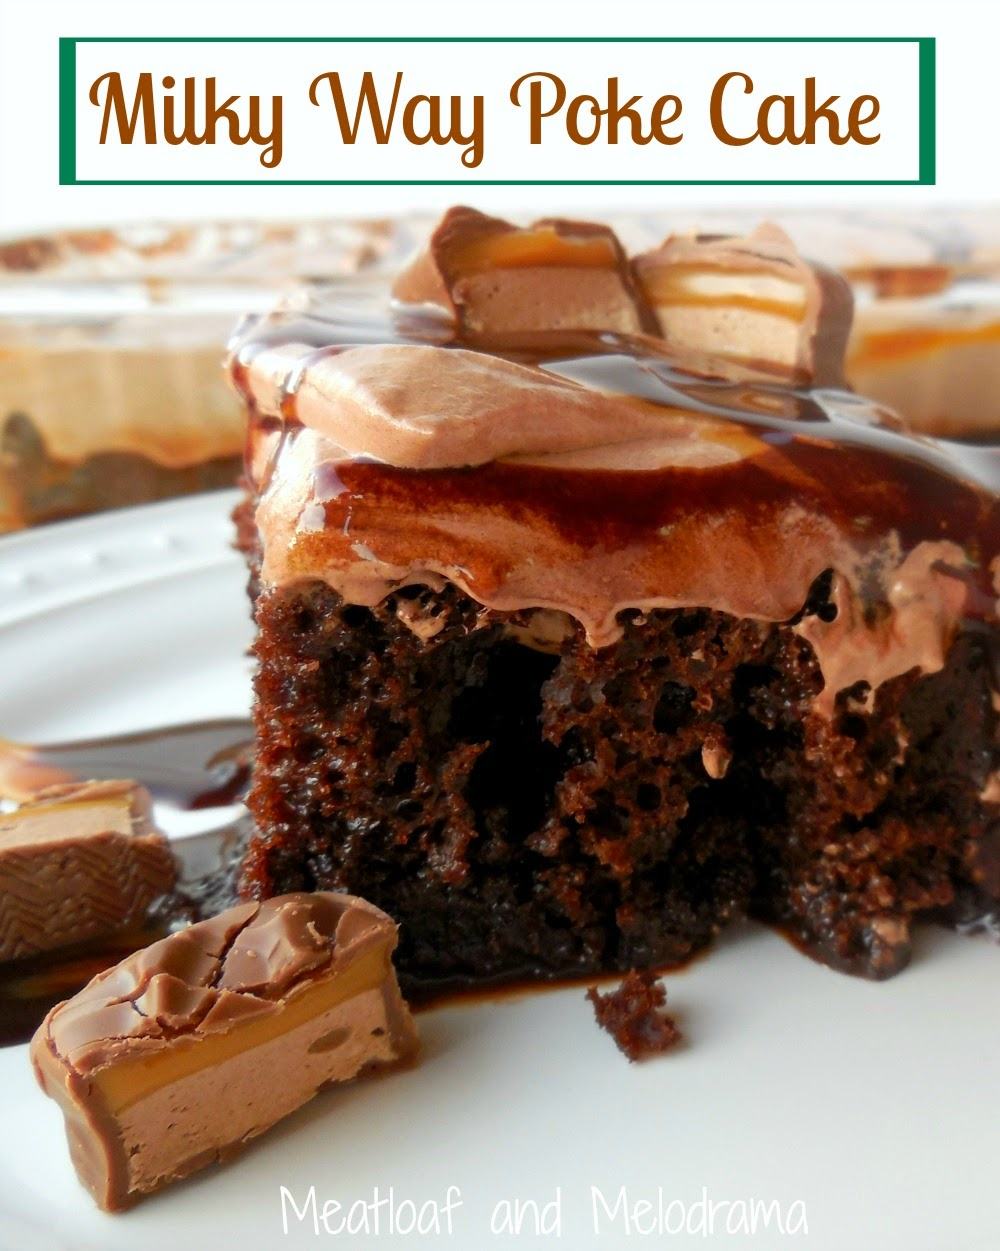 slice of chocolate poke cake with chocolate cool whip frosting, caramel and chocolate sauce and milky way bars